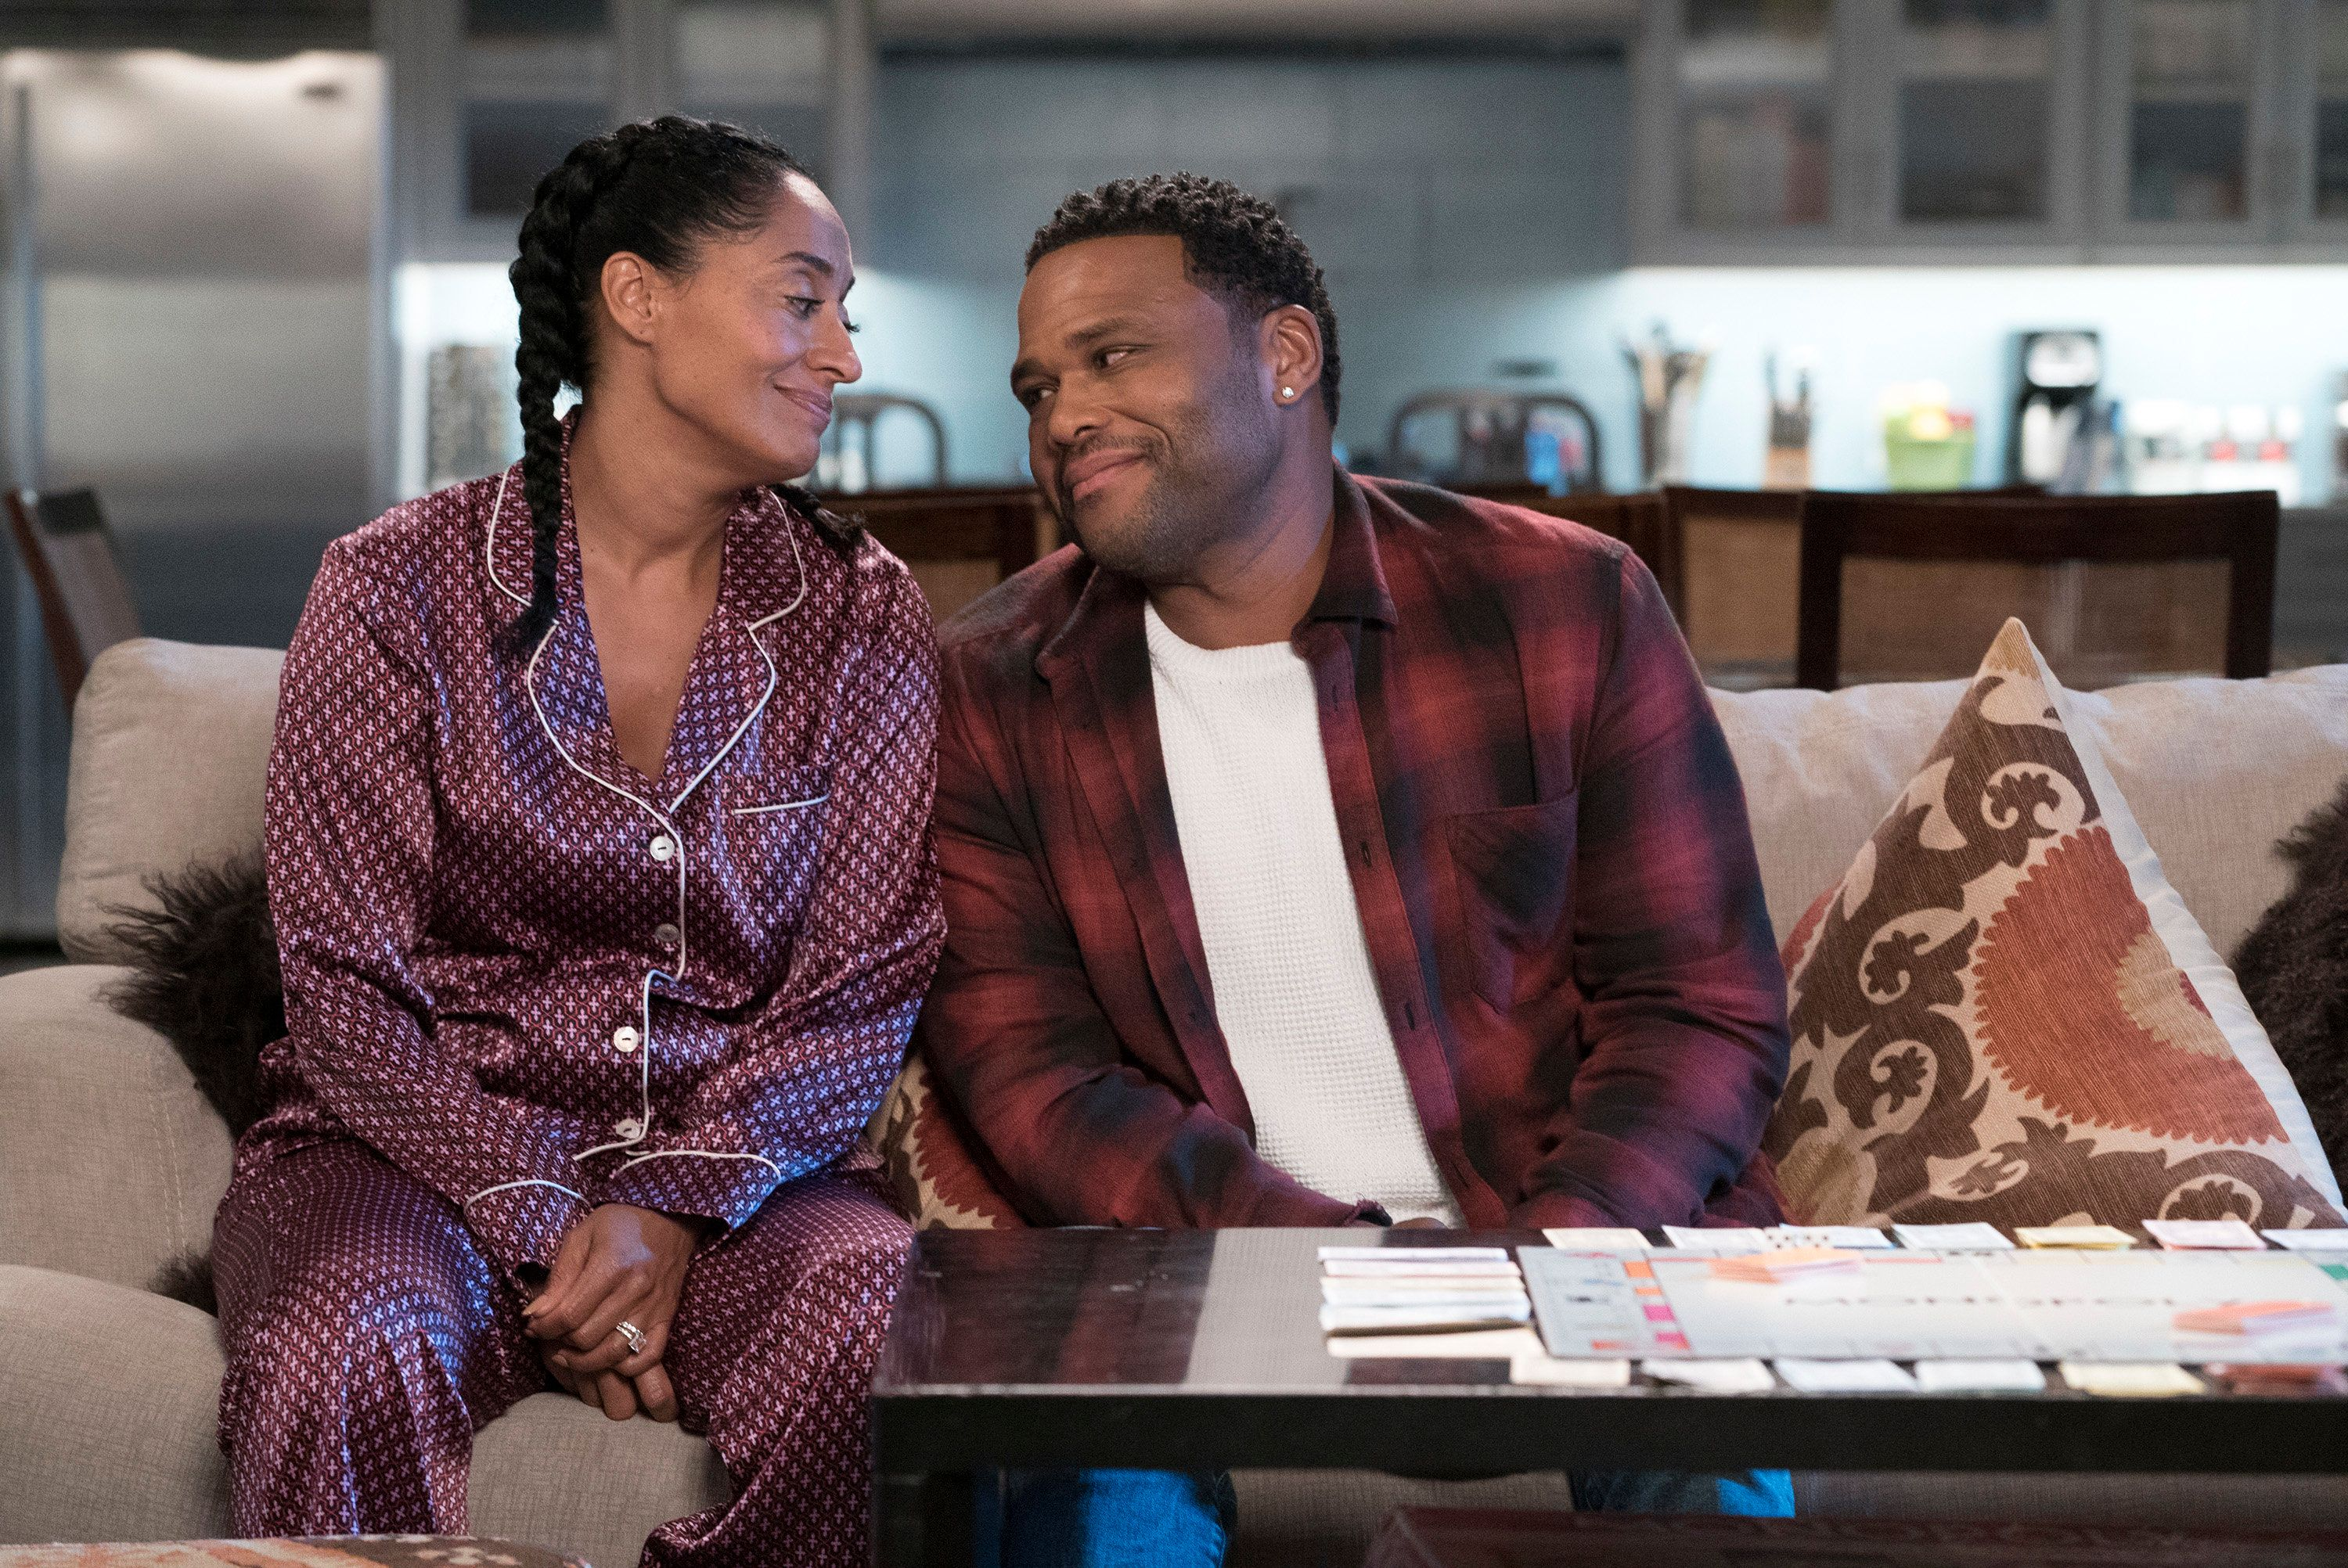 BLACK-ISH - 'Advance to Go (Collect $200)' - Dre brings everyone together for a rowdy family game night and the competition is fierce. The game of choice is Monopoly and as the night progresses, alliances are formed and some are pushed to their limits. Meanwhile, Bow makes it clear how she feels about Junior's girlfriend, Megan, on 'black-ish,' TUESDAY, OCTOBER 24 (9:00-9:30 p.m. EDT), on The ABC Television Network. (Eric McCandless via Getty Images) TRACEE ELLIS ROSS, ANTHONY ANDERSON